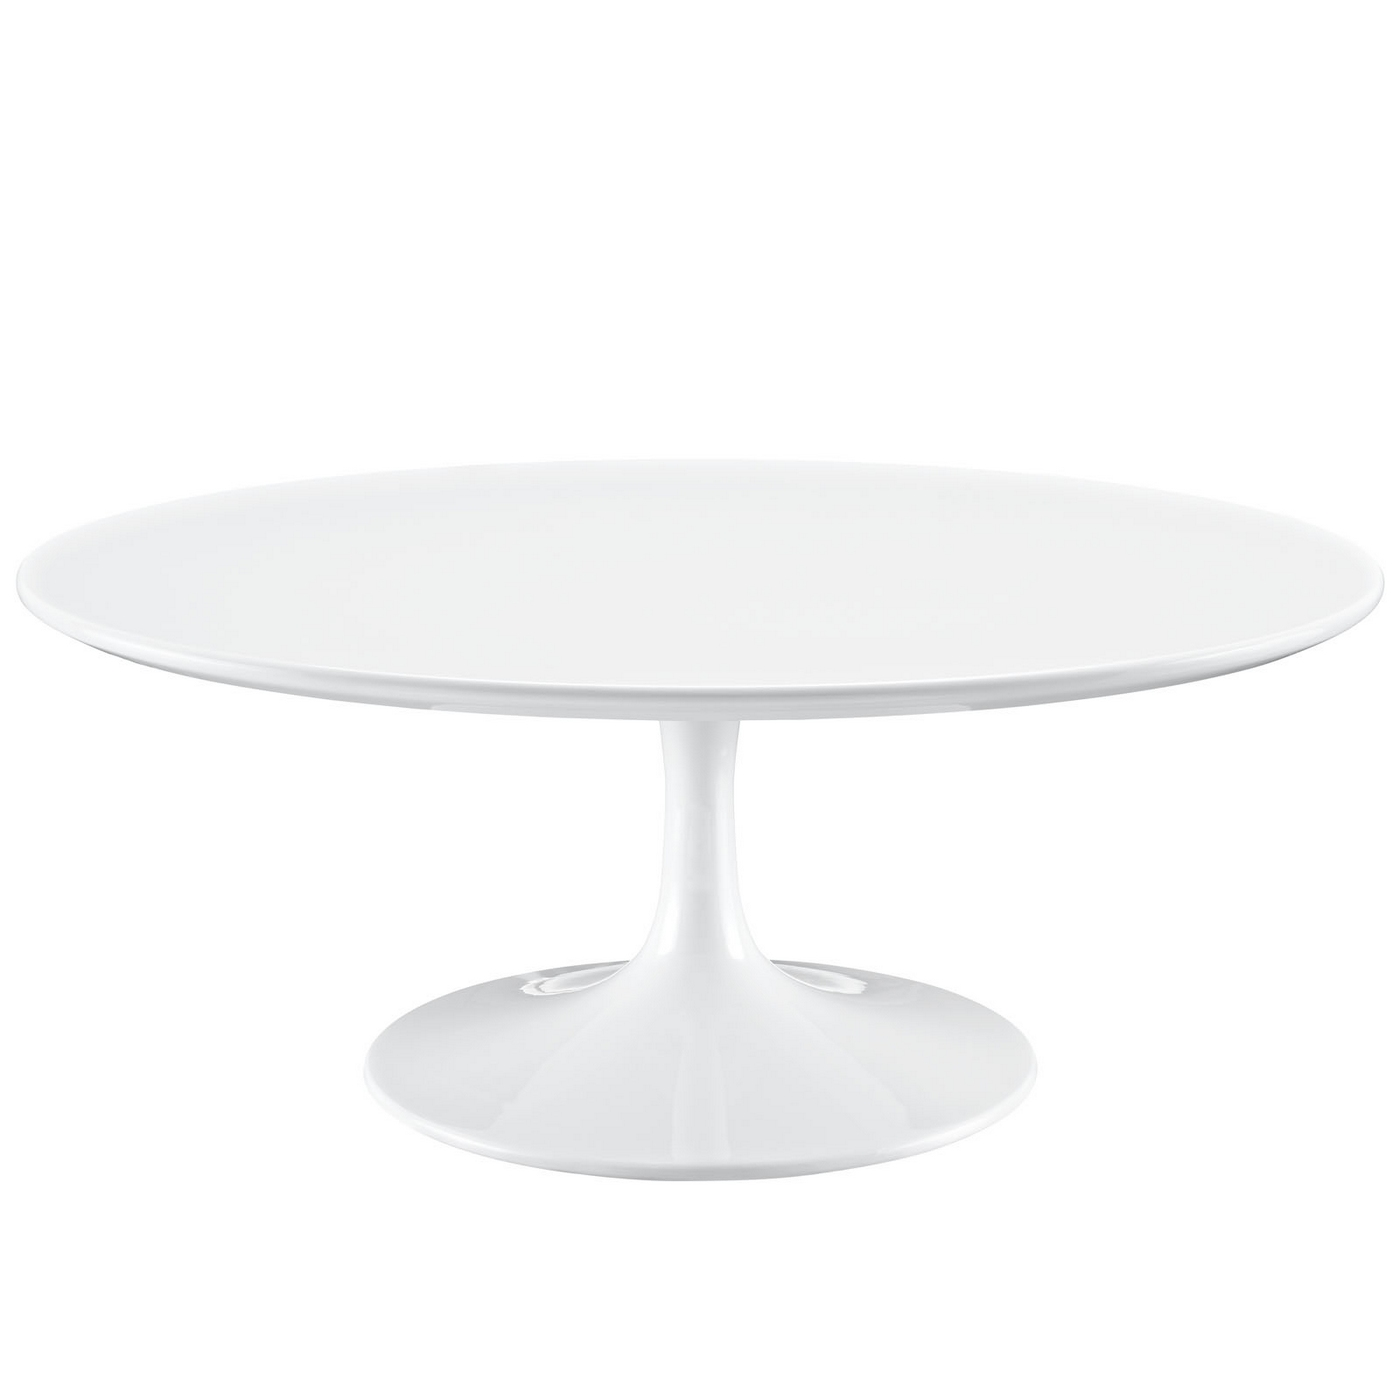 Lippa Modern 40 Round Pedestal Coffee Table With Lacquered Finish White